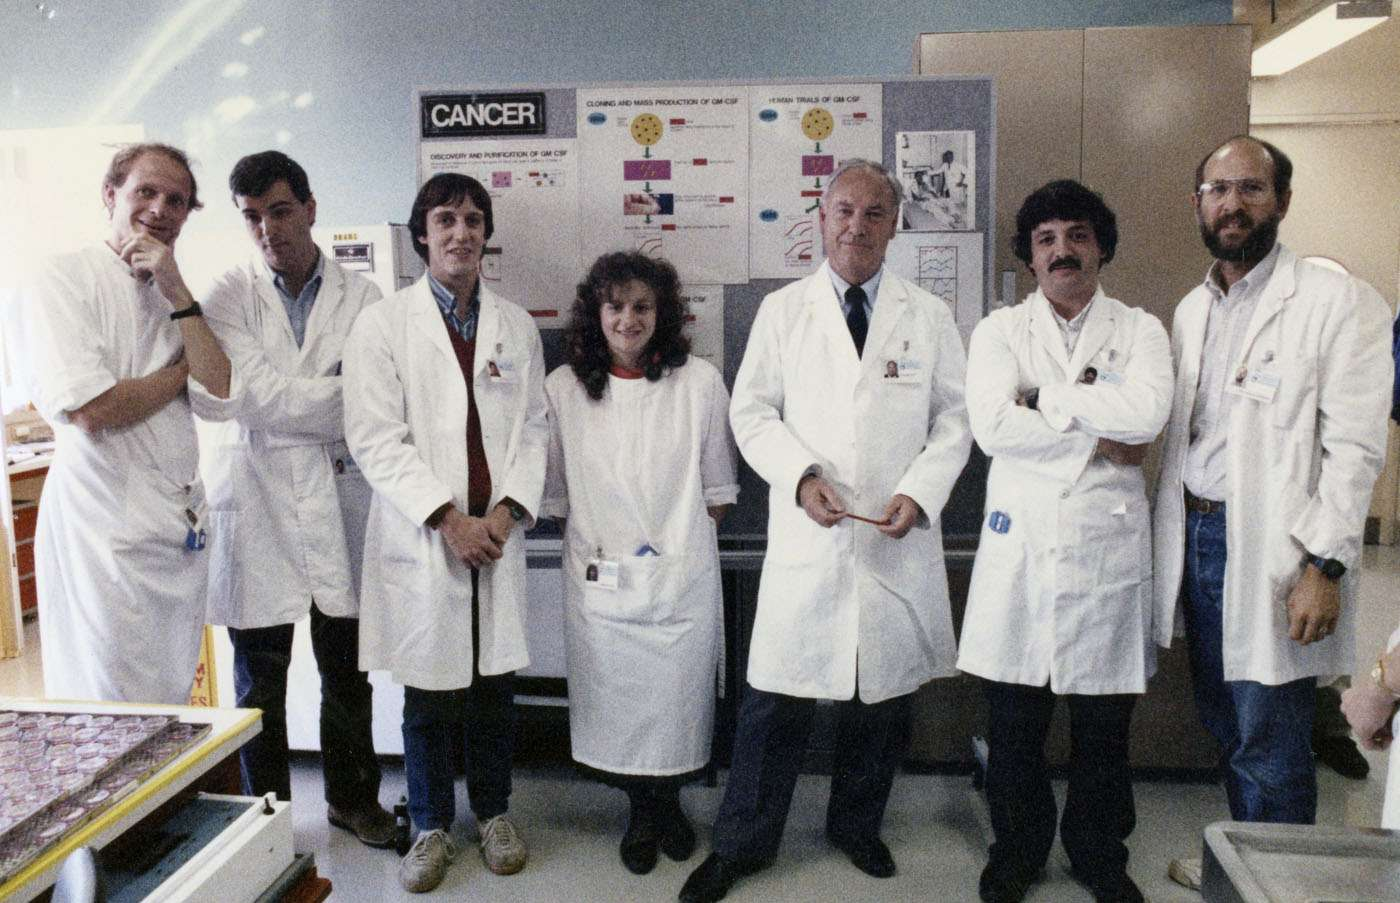 Scientists stand in an office, all wearing lab coats.